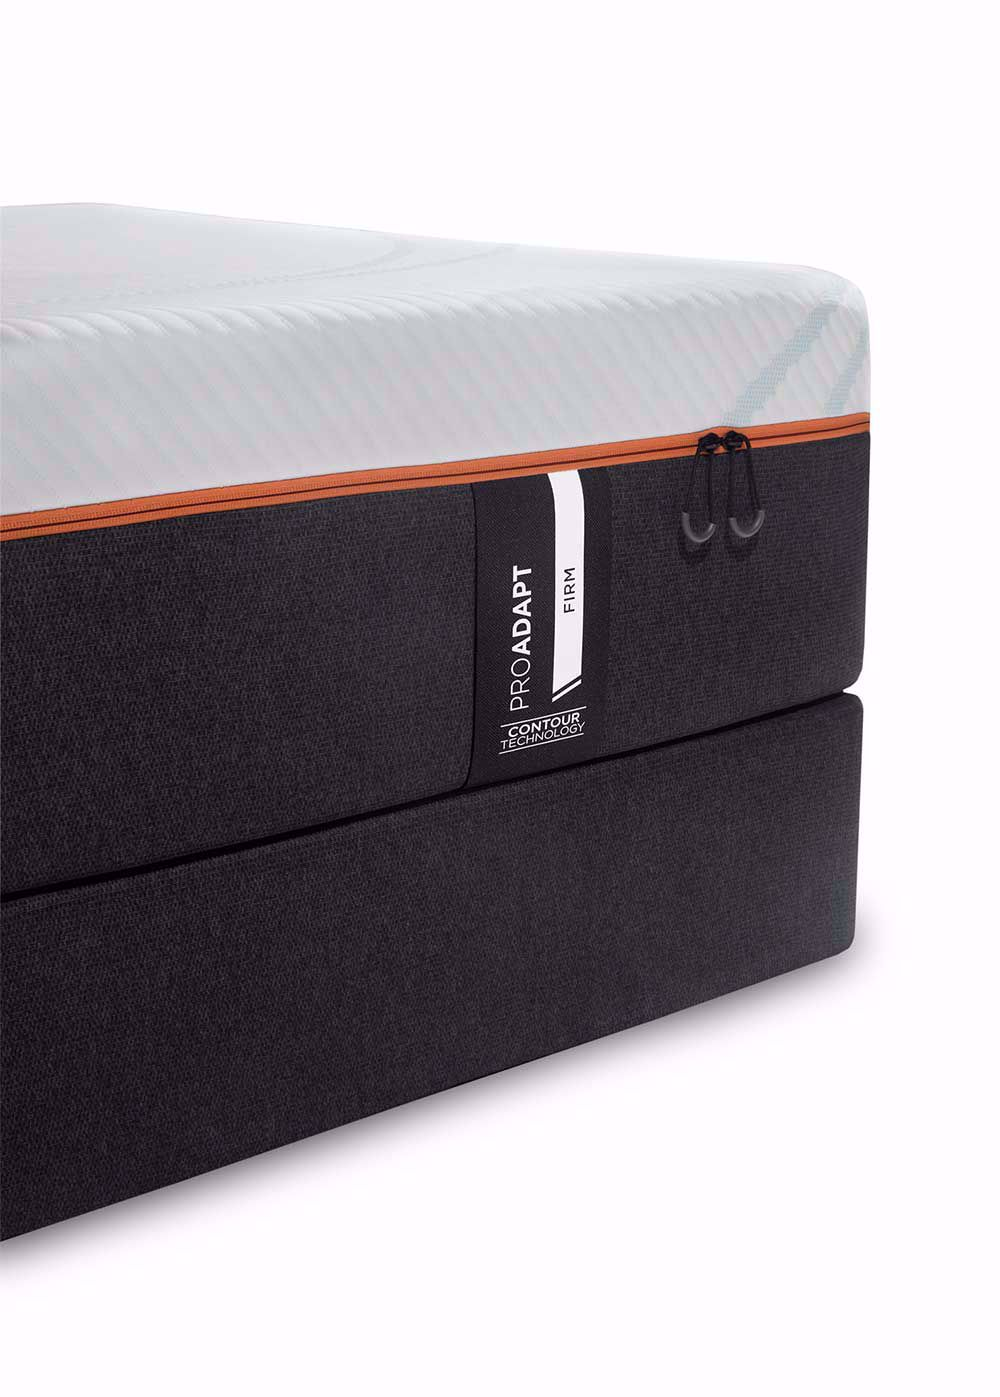 Picture of Tempur Pedic Pro Adapt Firm King Mattress Set